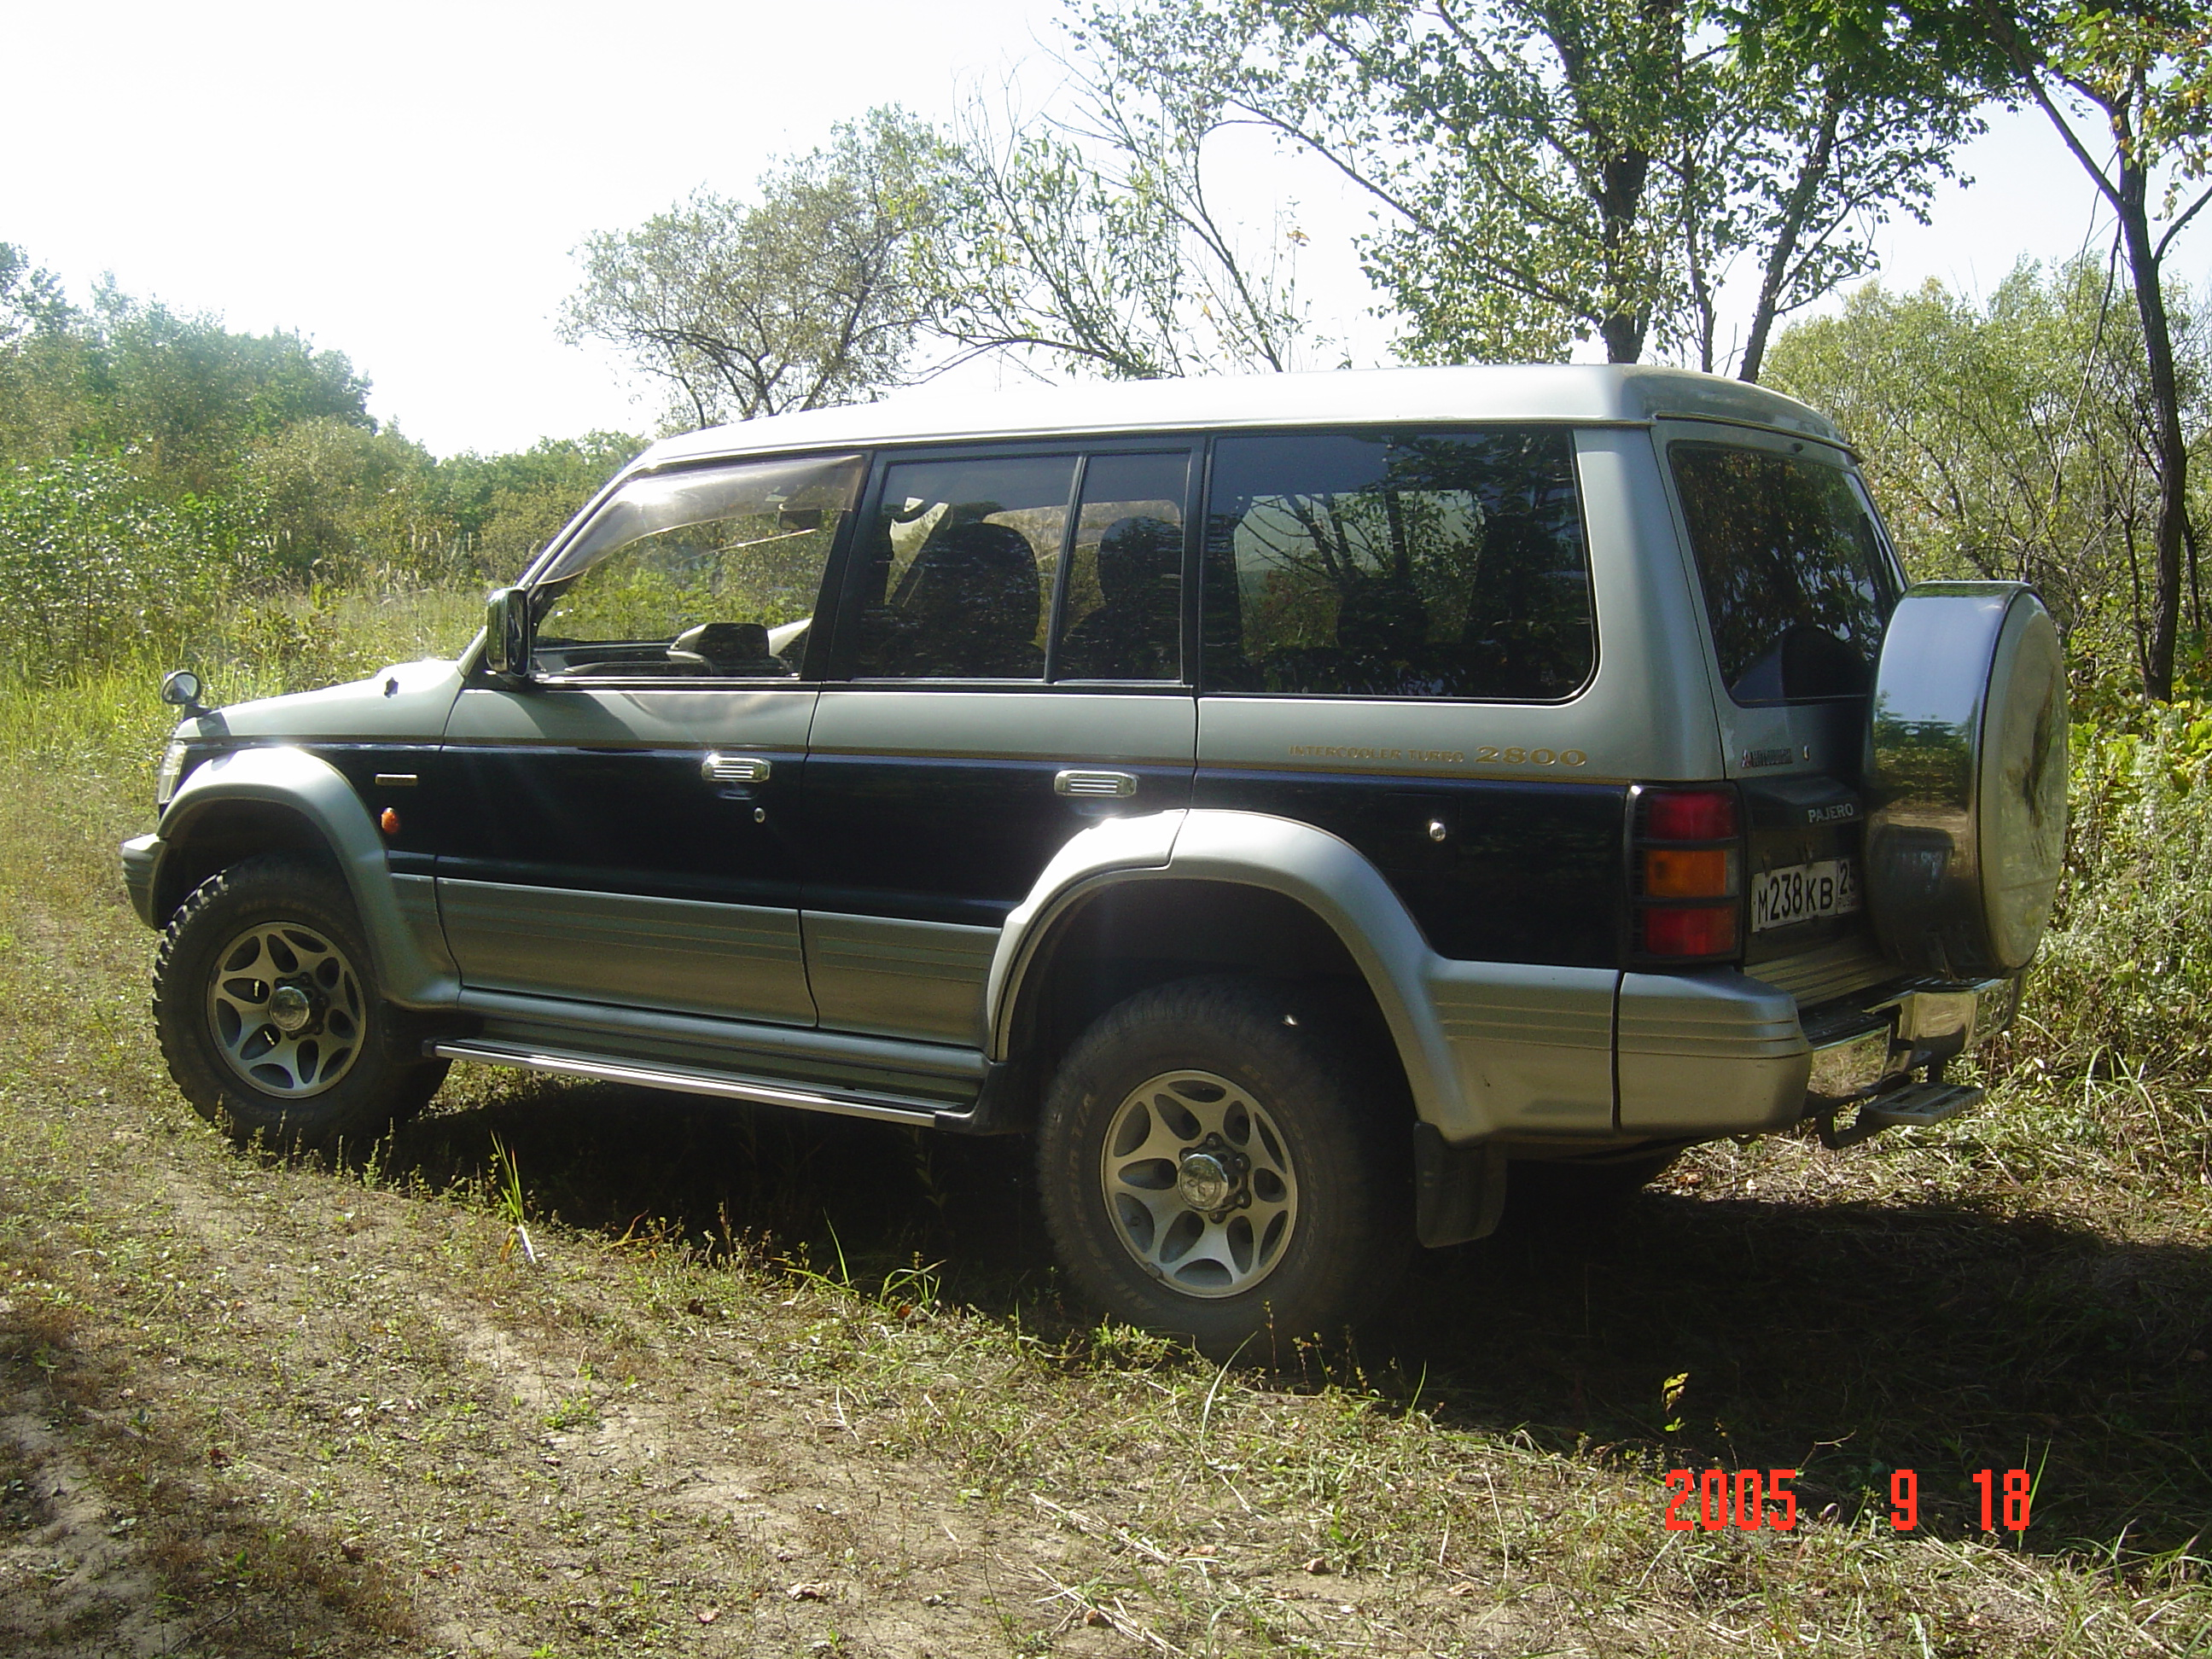 1996 Mitsubishi Montero Image 11 HD Wallpapers Download free images and photos [musssic.tk]